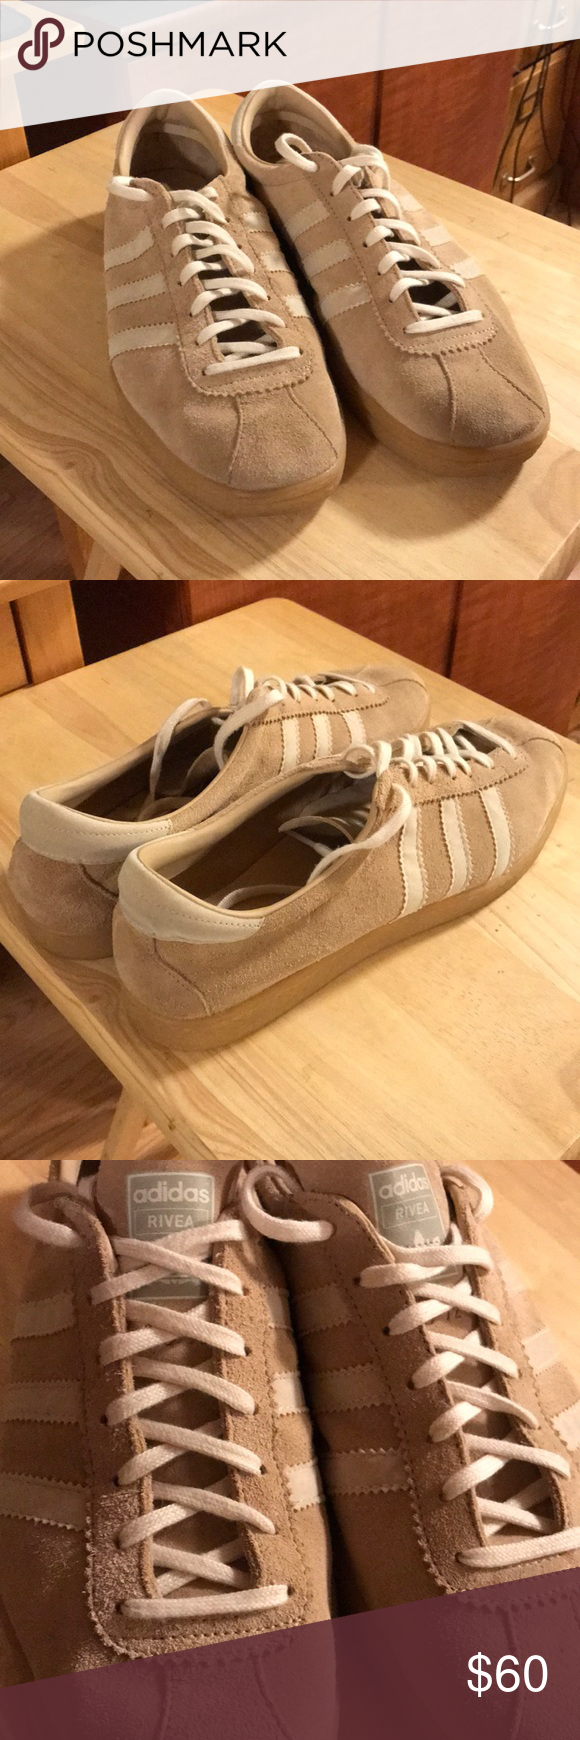 the latest b9696 9296e Adidas Tobacco Rivea Pale Nude   Cardboard Colorway Men s Size 11 (US) Only  worn a handful of times, in very good condition. adidas Shoes Sneakers